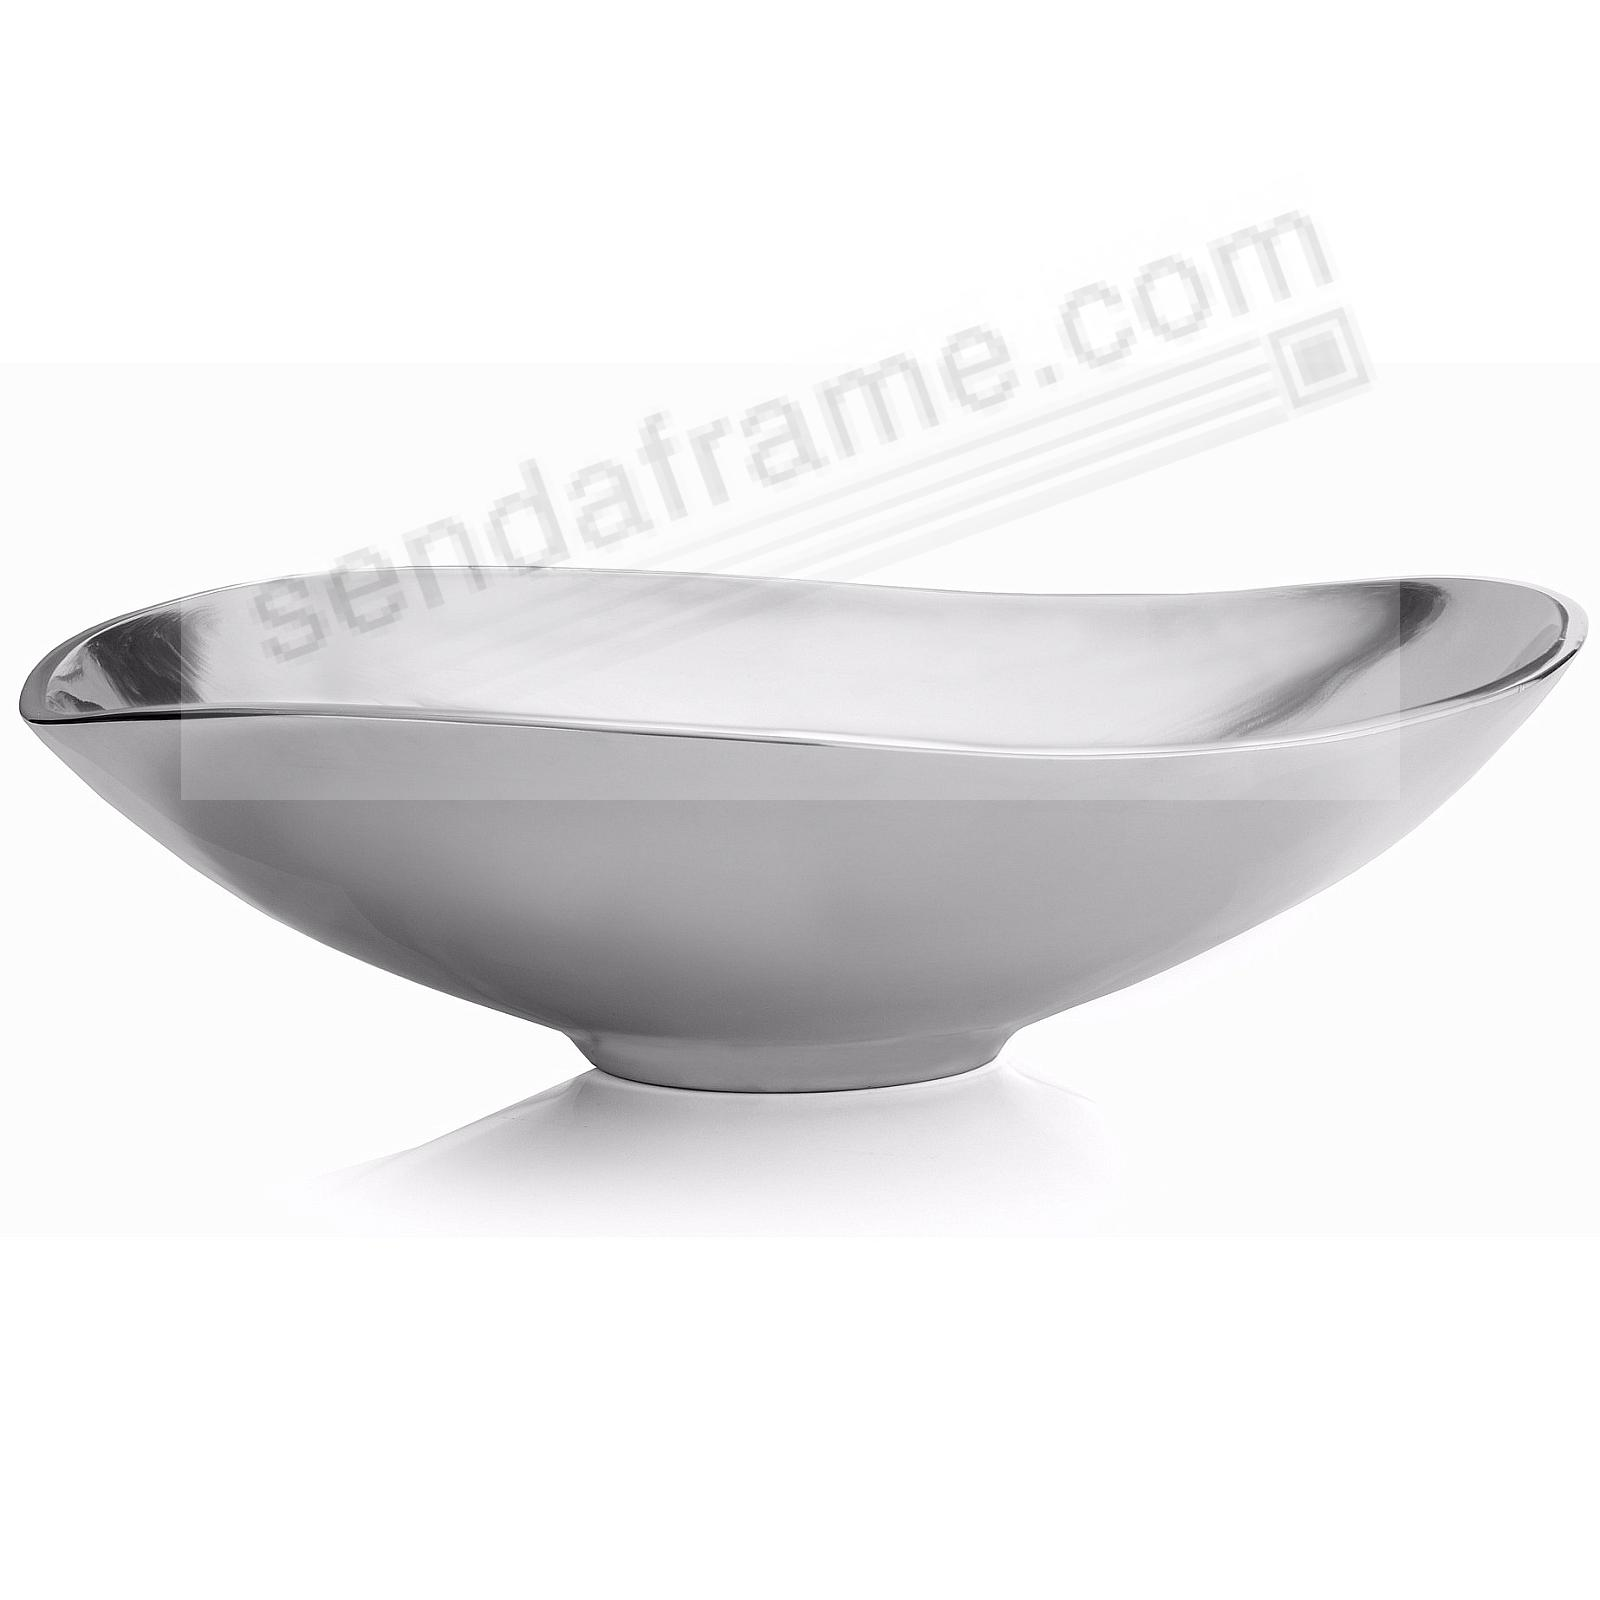 The Original CRADLE BOWL by Nambe®